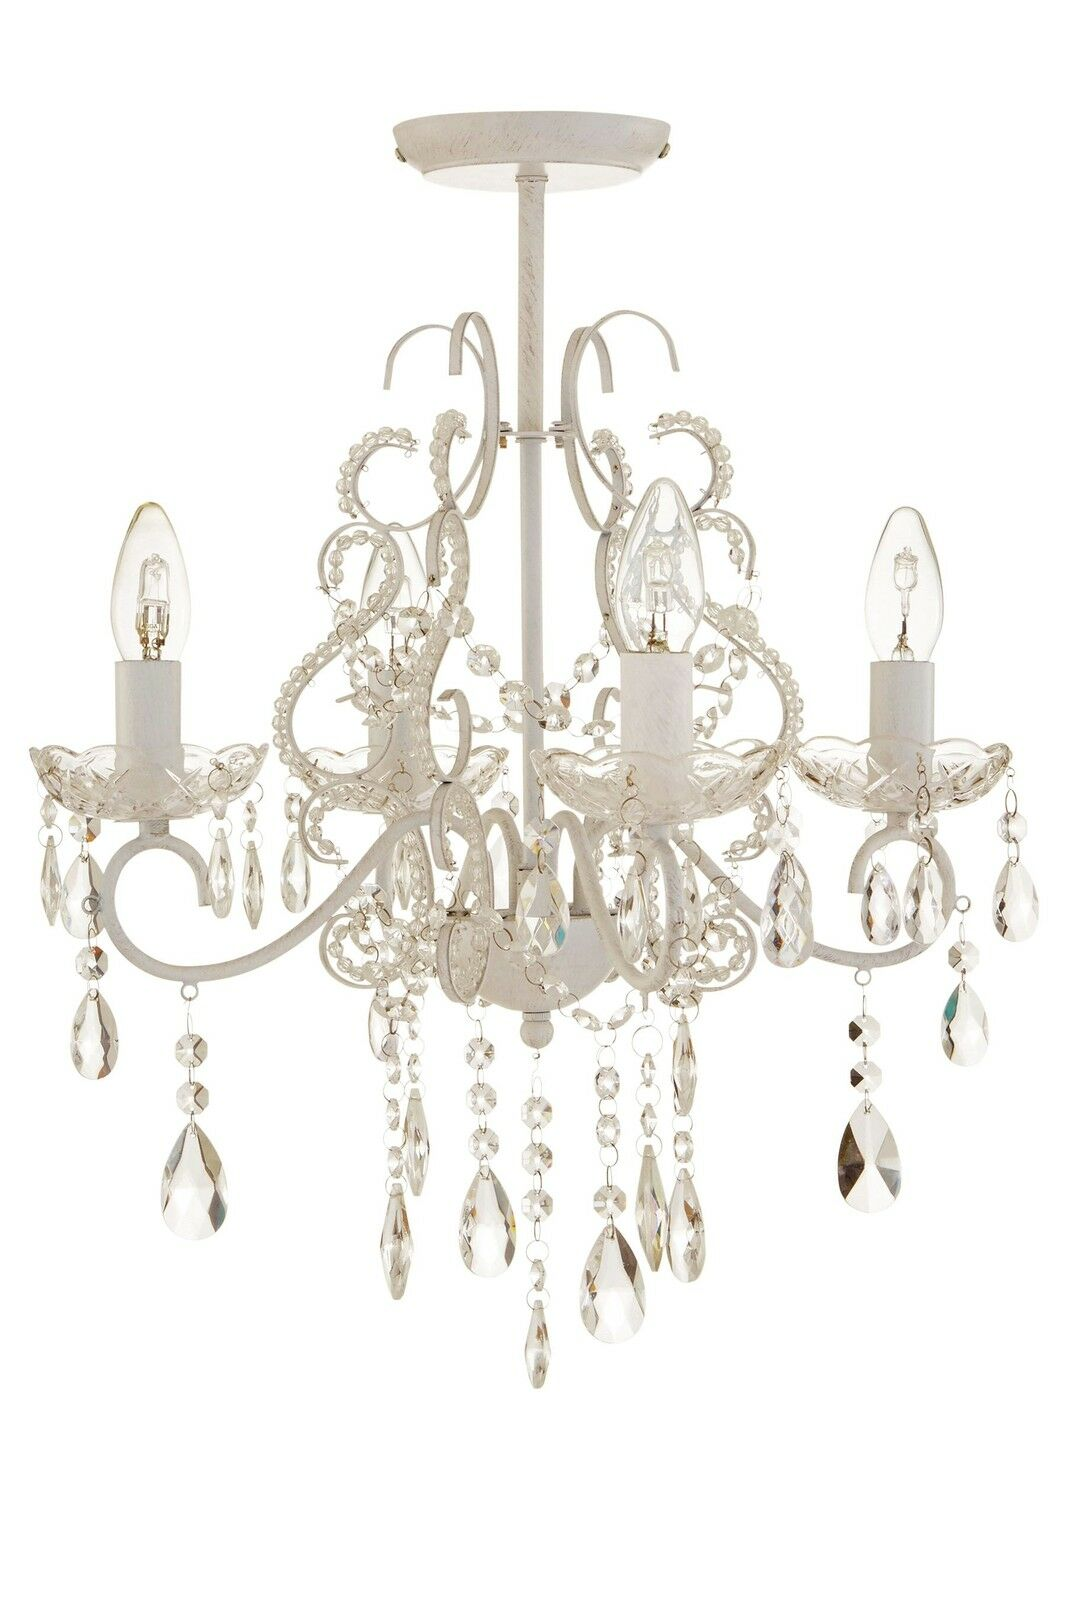 Ceiling Lights Next Day Delivery : Ceiling lights next flush day